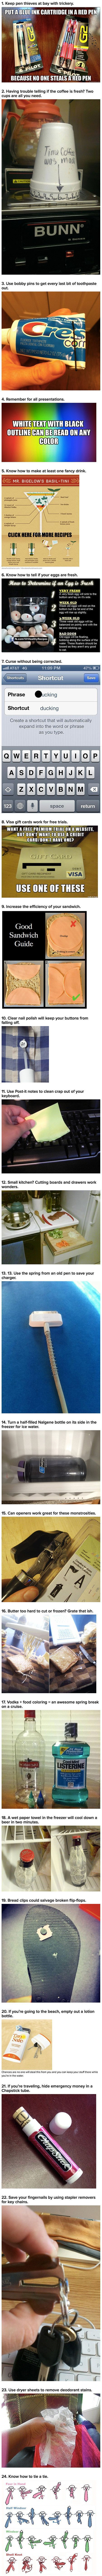 It's Going To Be A Great Summer Because Of These 39 Genius Solutions To Everyday Problems.